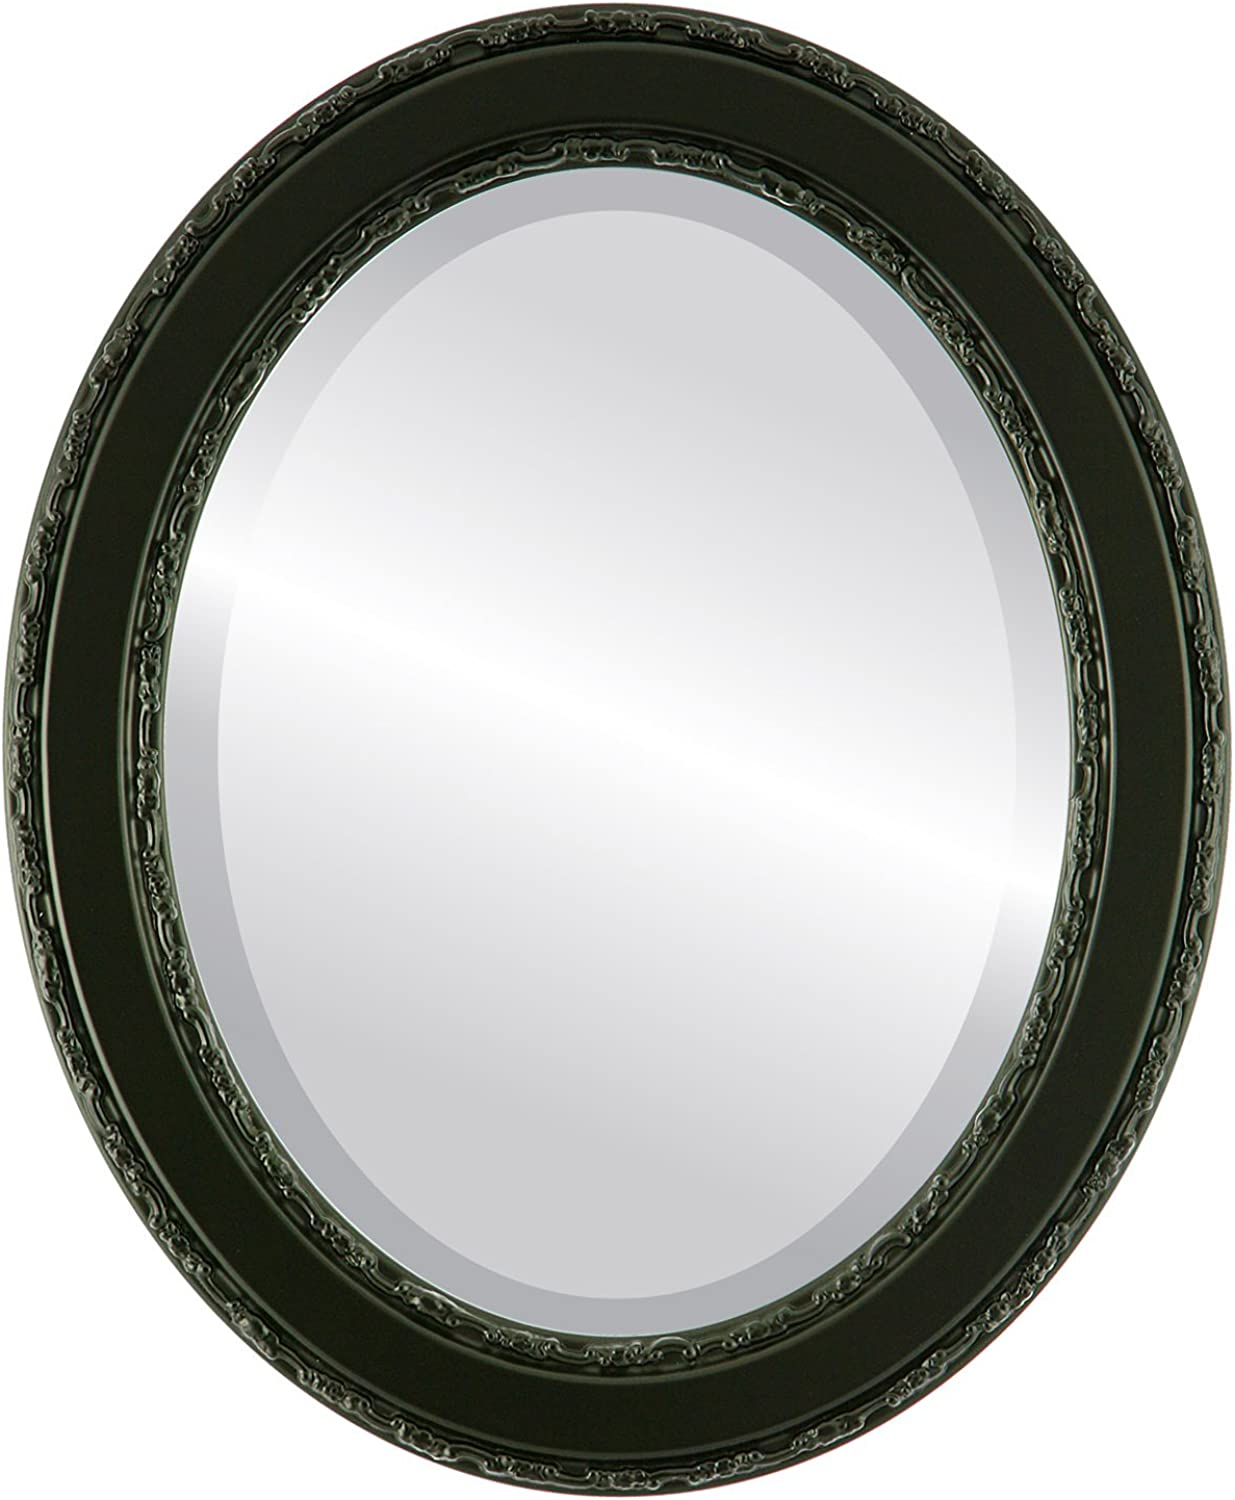 Oval Beveled Wall Mirror for Home Decor - Monticello Style - Matte Black - 16x20 Outside Dimensions